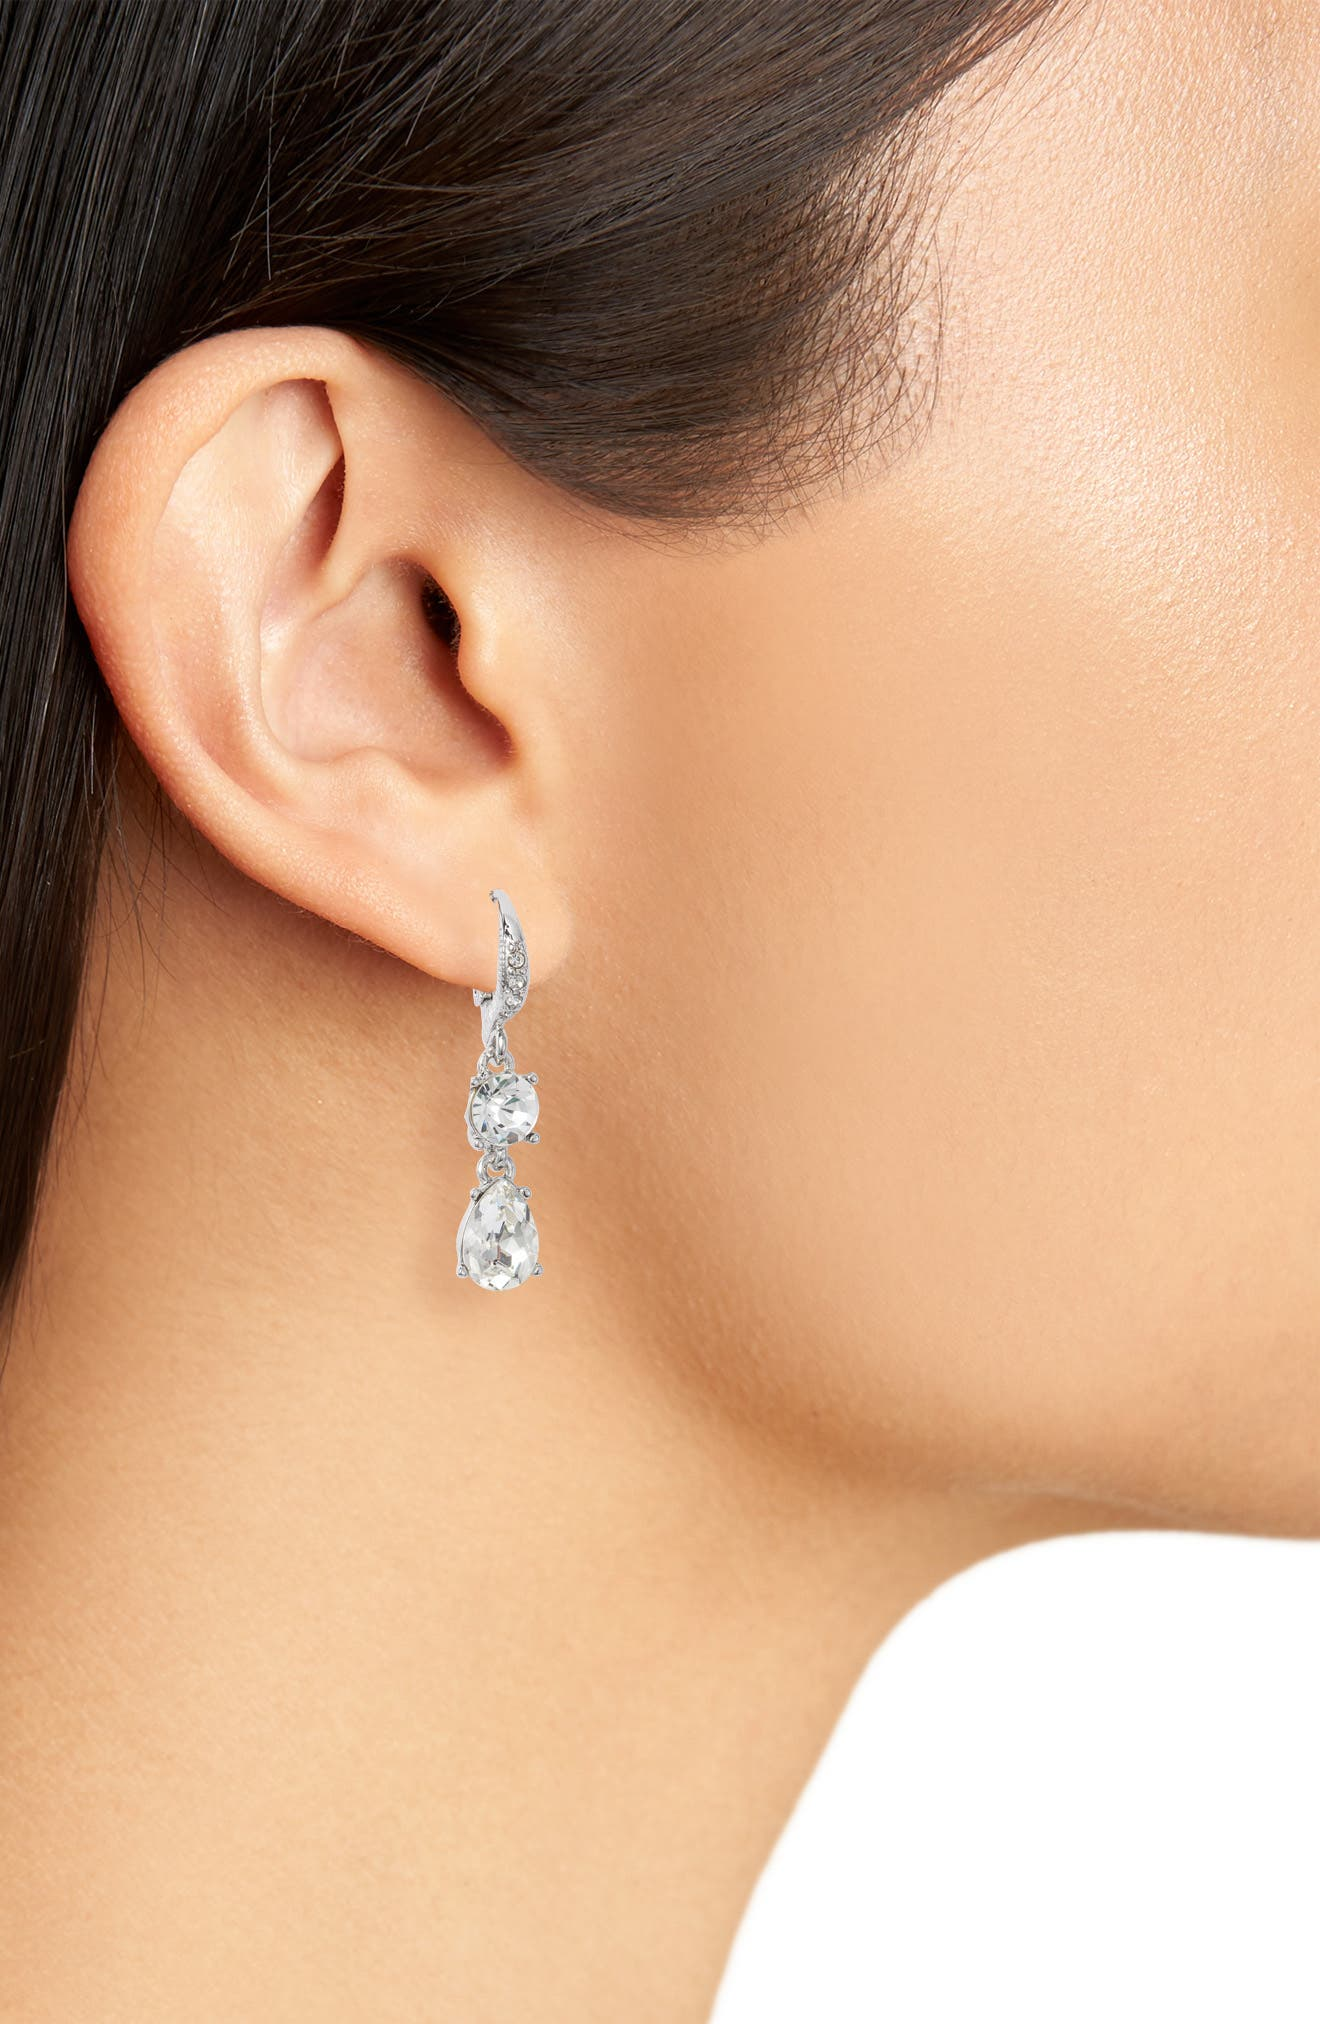 GIVENCHY,                             Small Crystal Drop Earrings,                             Alternate thumbnail 2, color,                             040